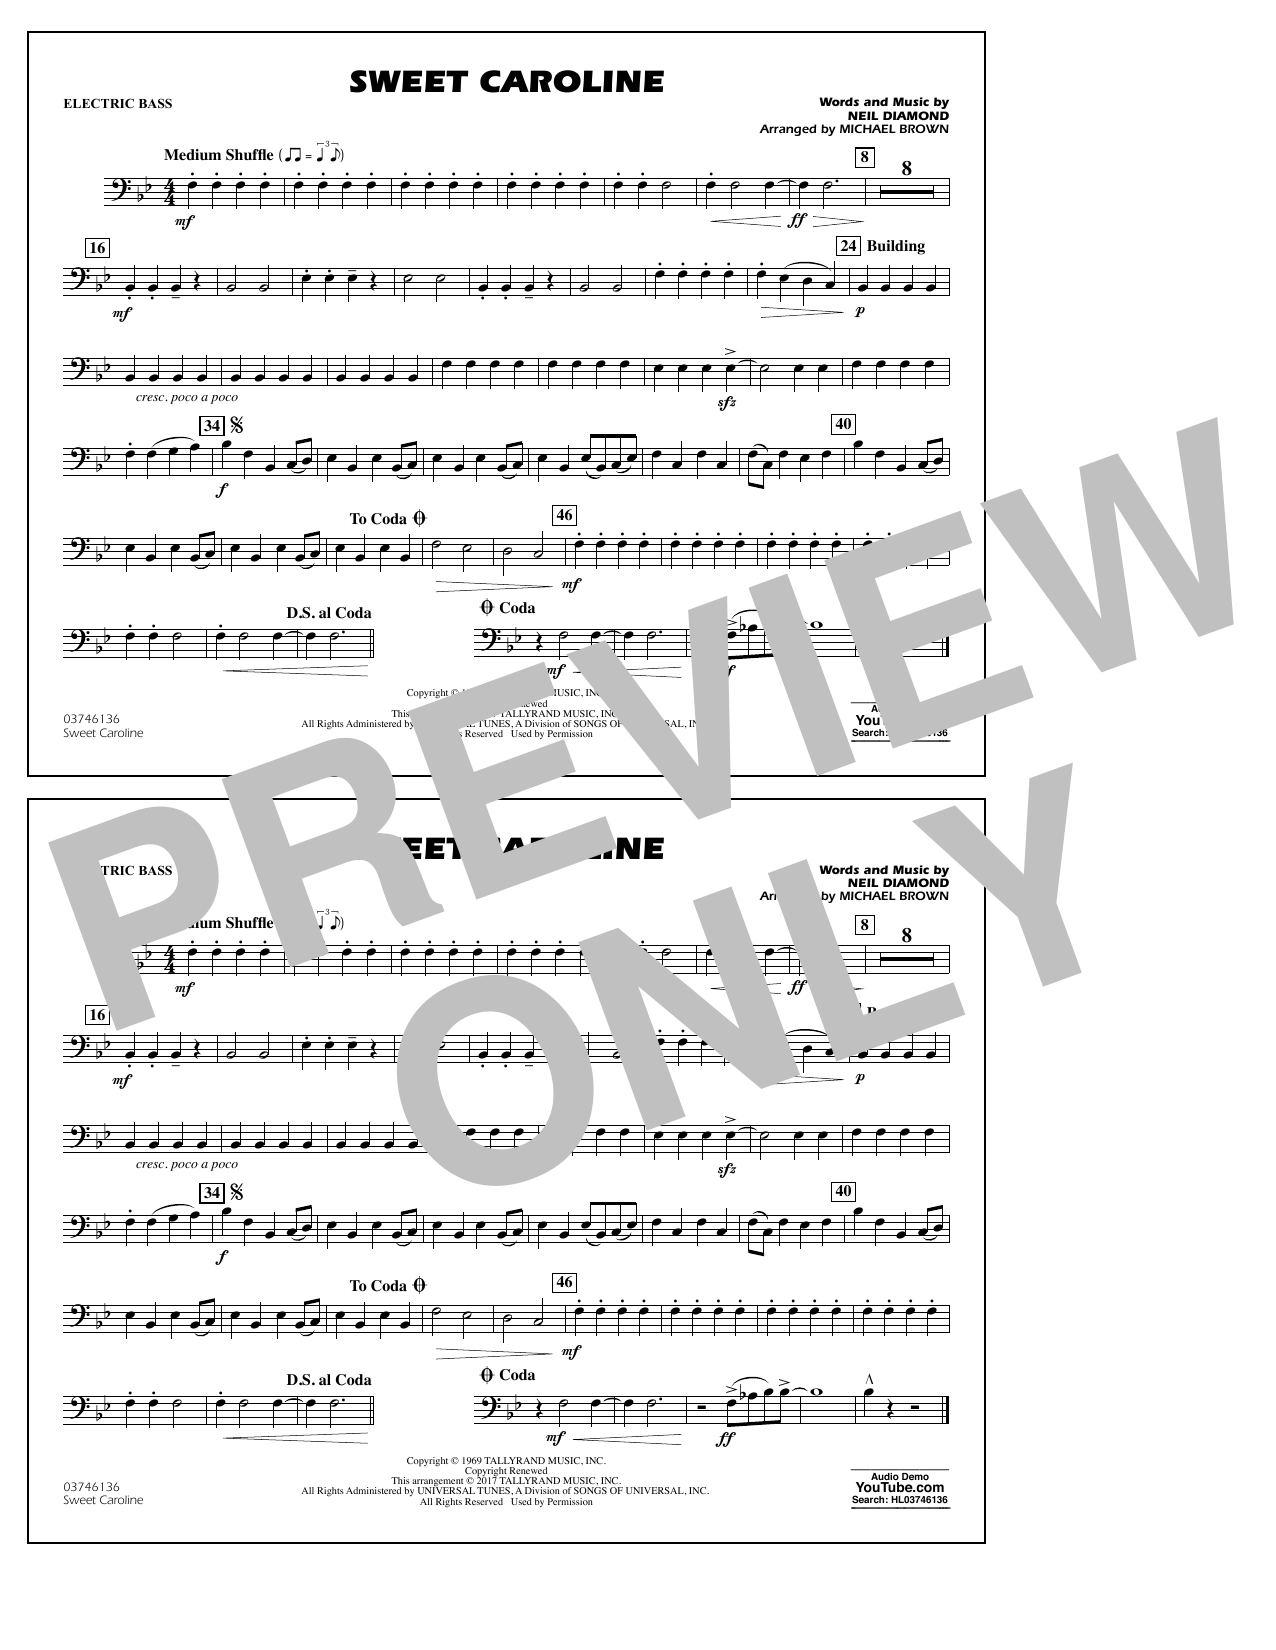 Sweet Caroline - Electric Bass Sheet Music